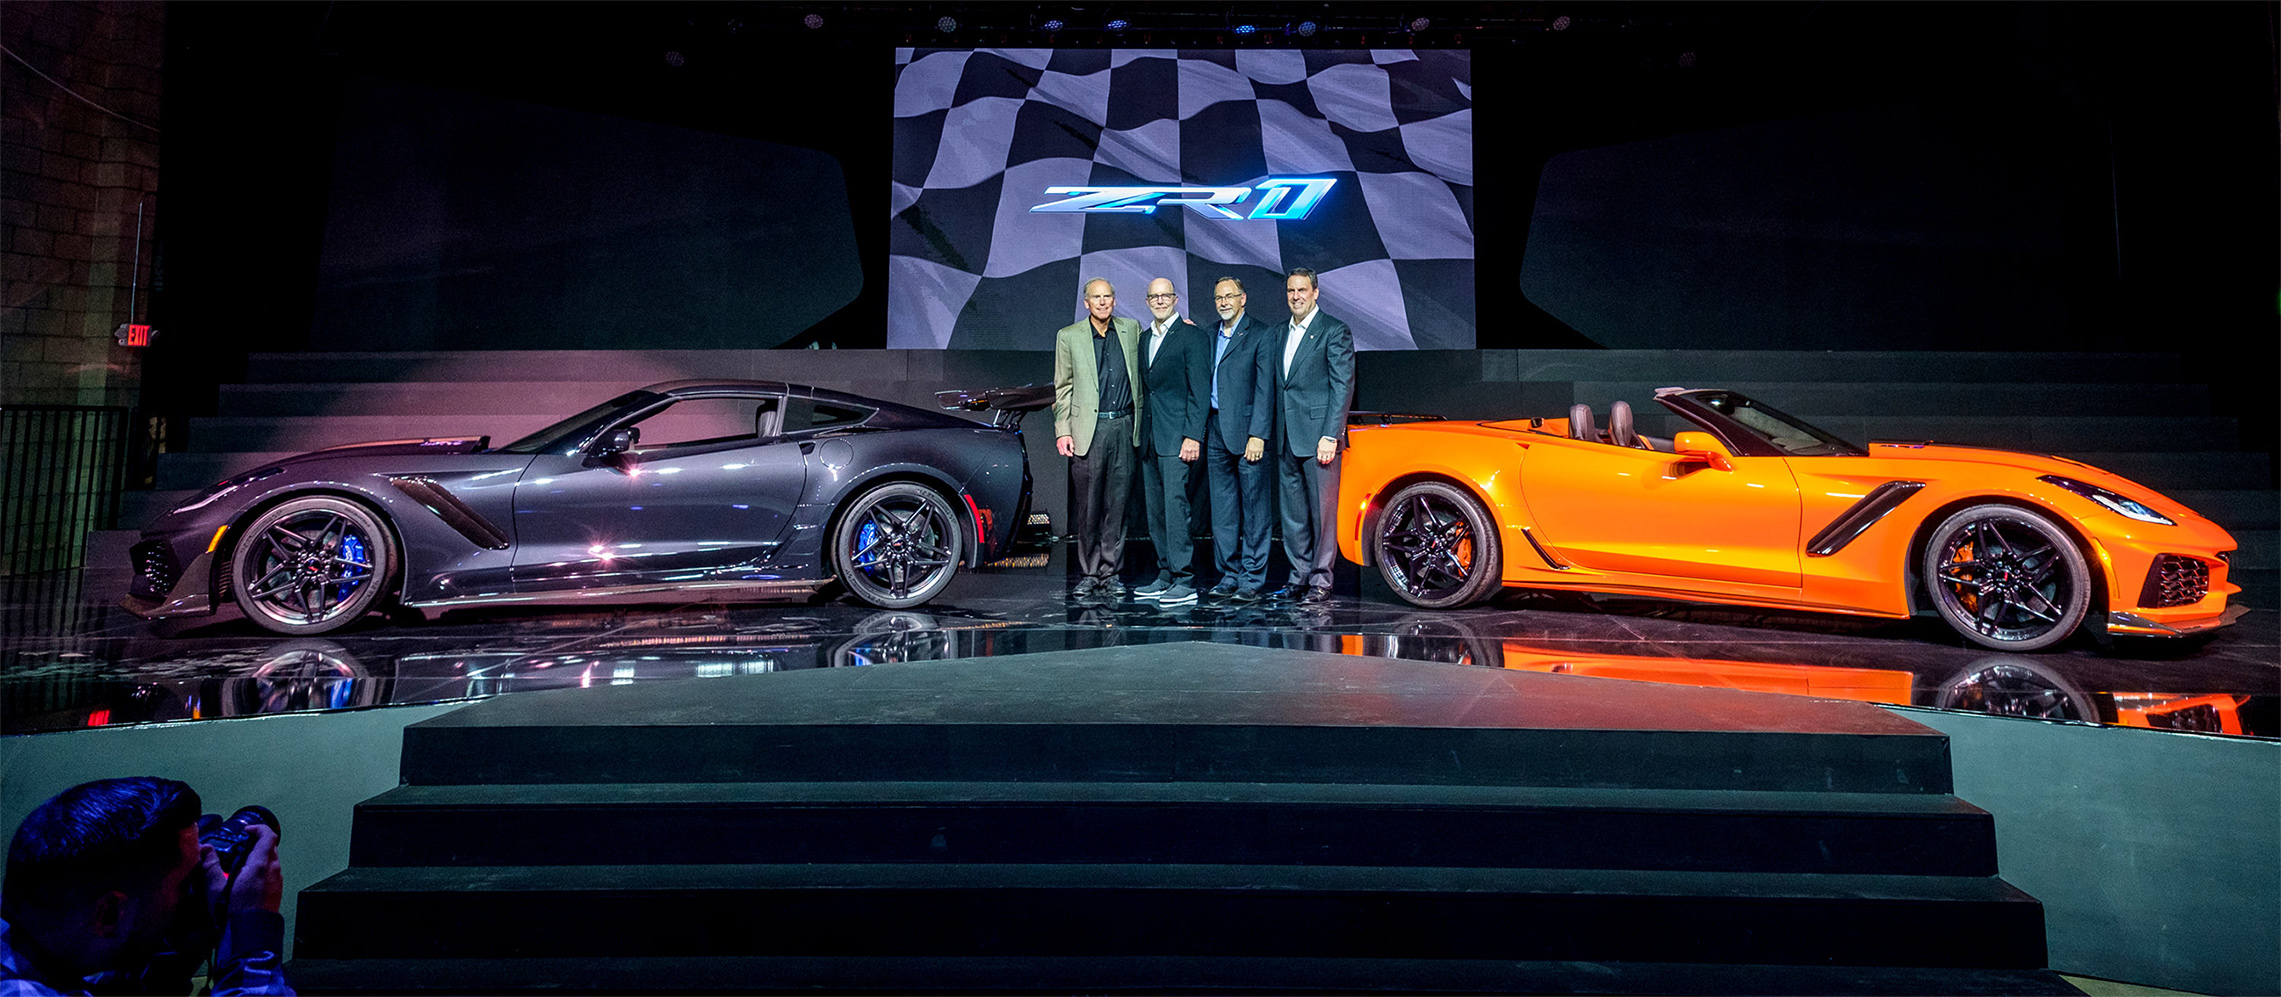 TrackWorthy -2019 Chevrolet Corvette ZR1 Convertible (6)